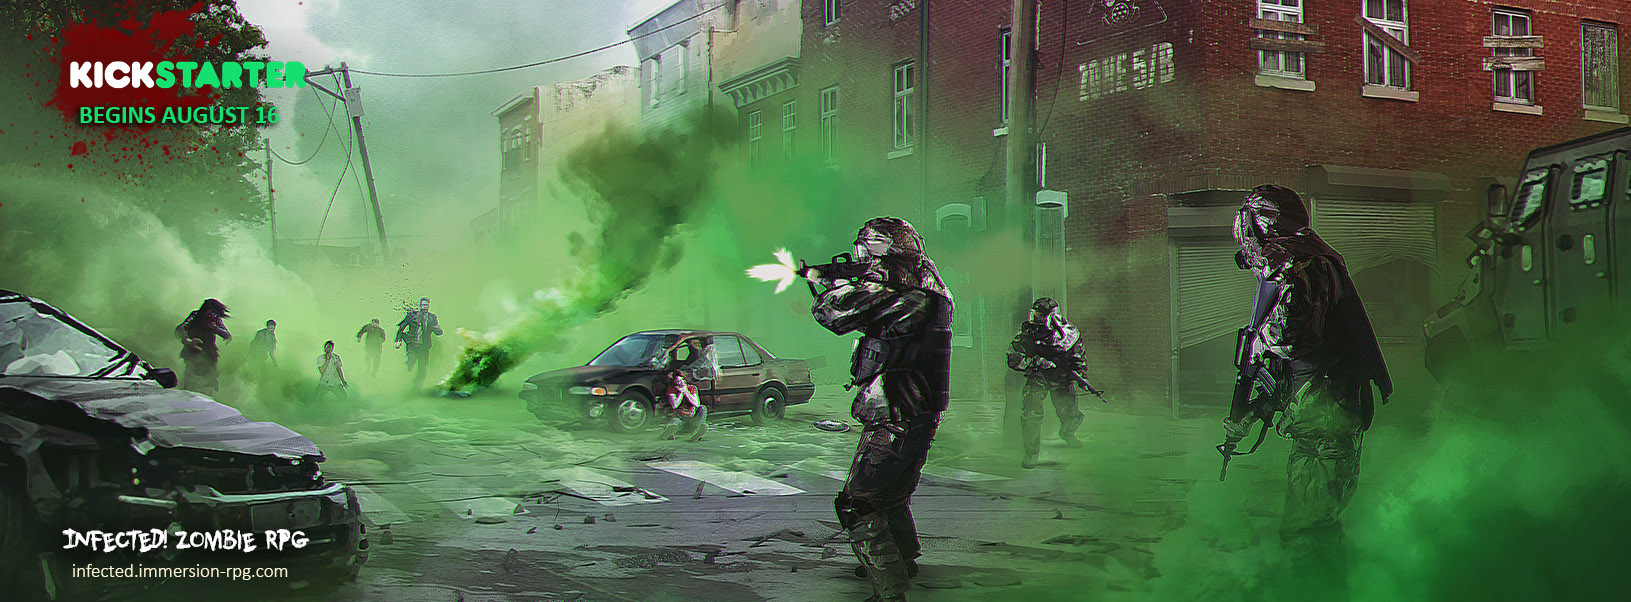 INFECTED ZOMBIE RPG coming to Kickstarter August 16